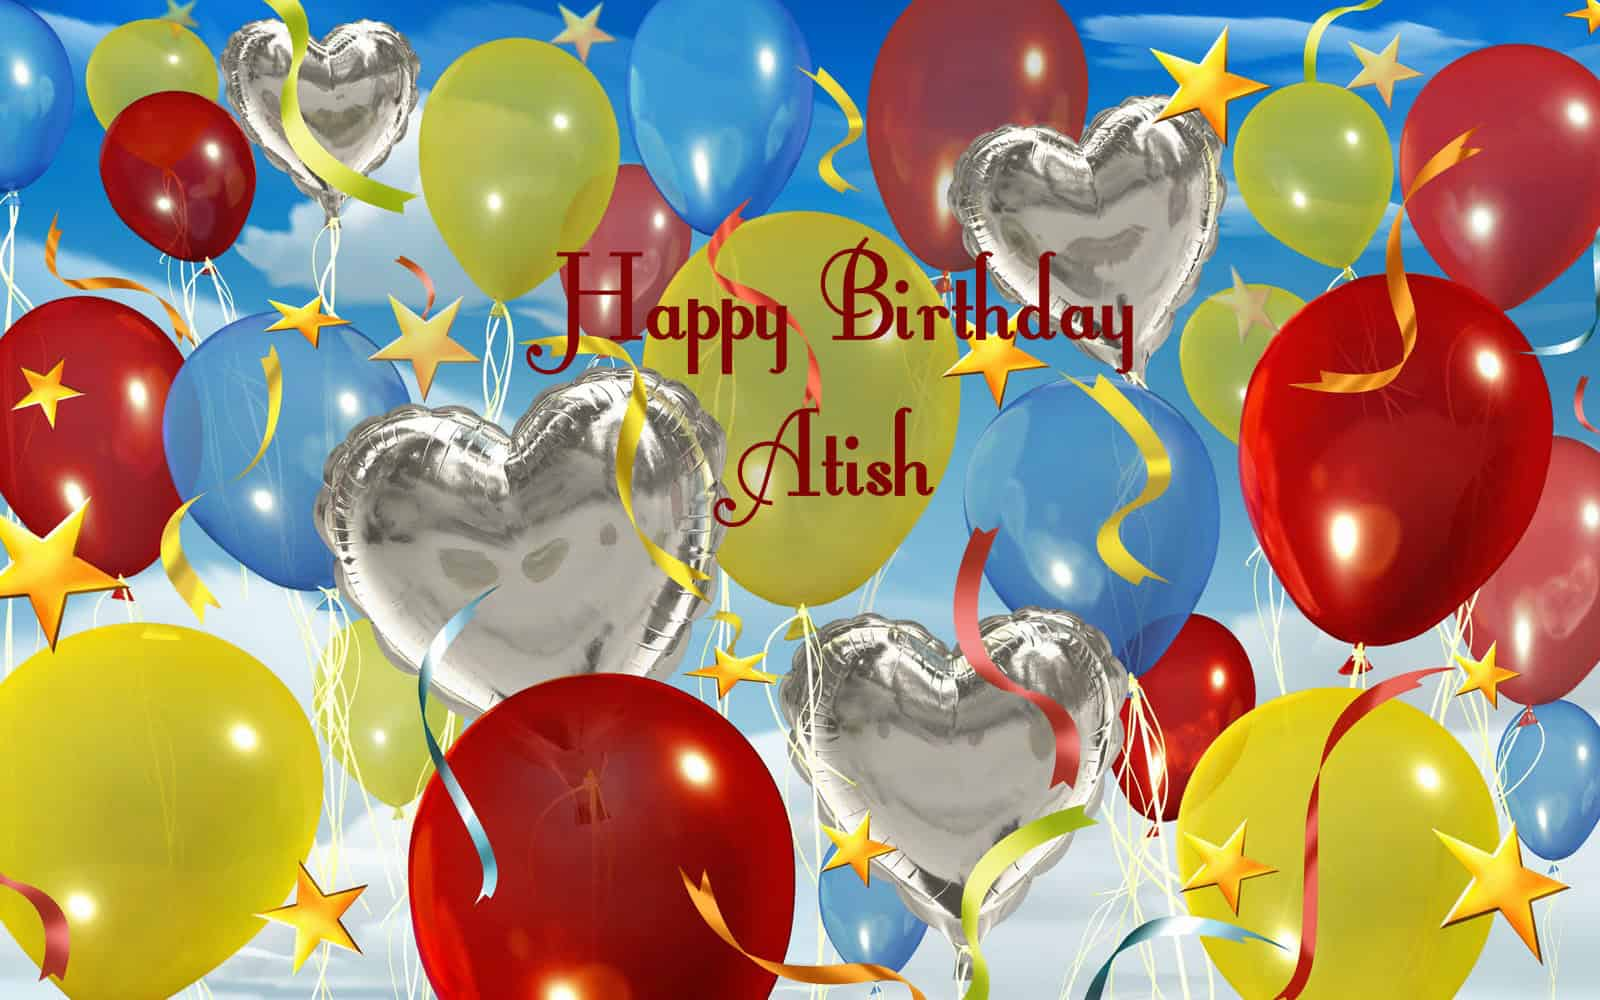 Happy Birthday Atish – Live Birthday Greetings